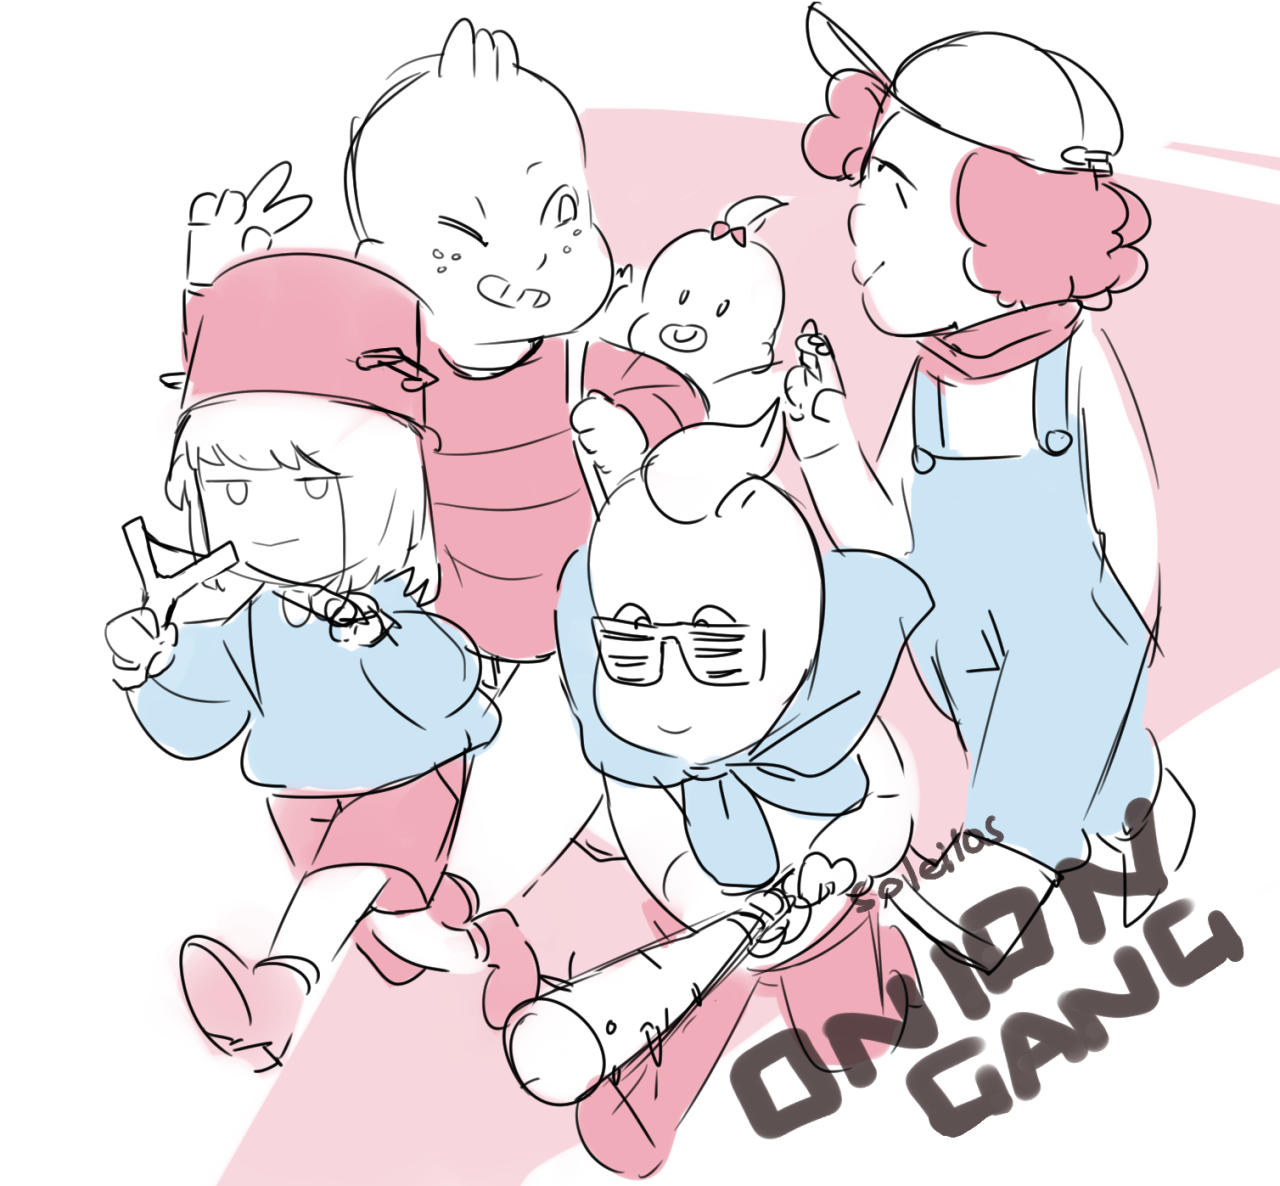 just a tiny thing for that new su episode! a gang of kids running amok– that gave me a bit of an earthbound vibe